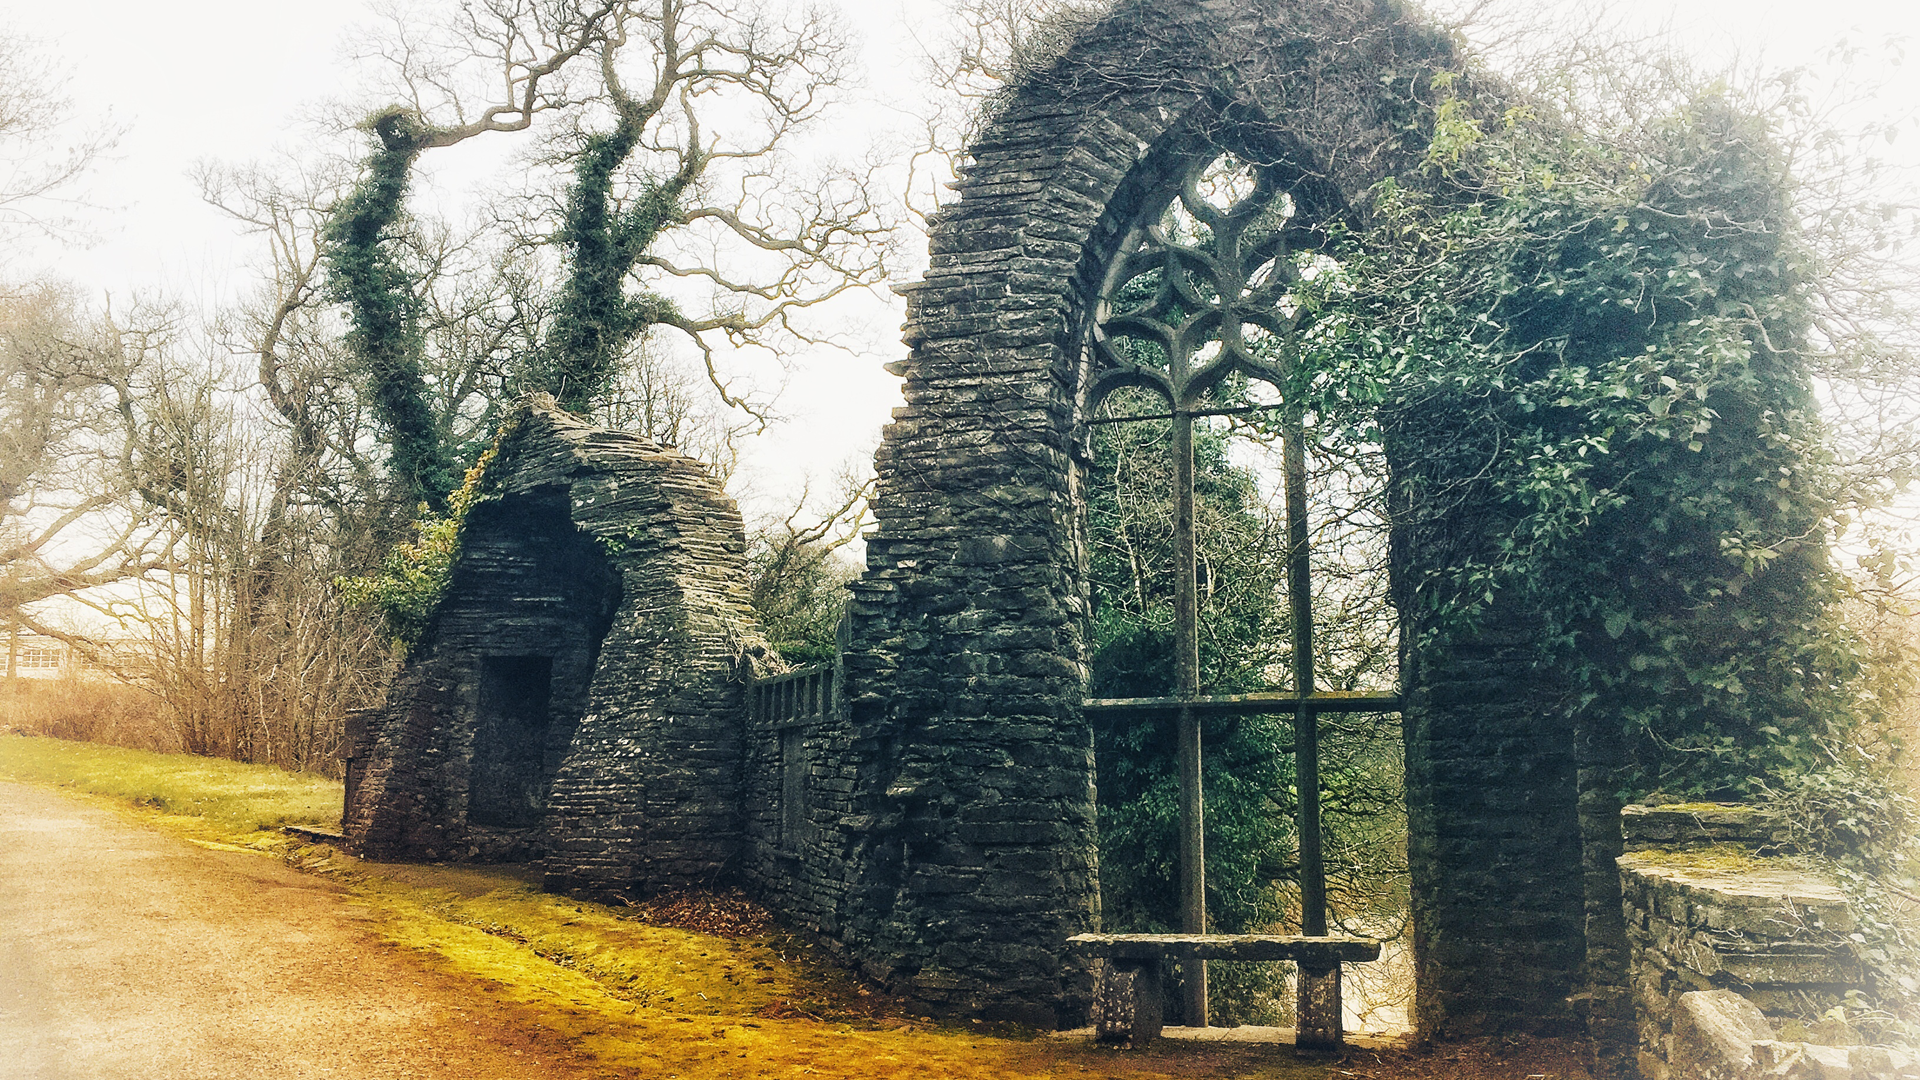 Gothic Ruin at Heywood Ballinakill